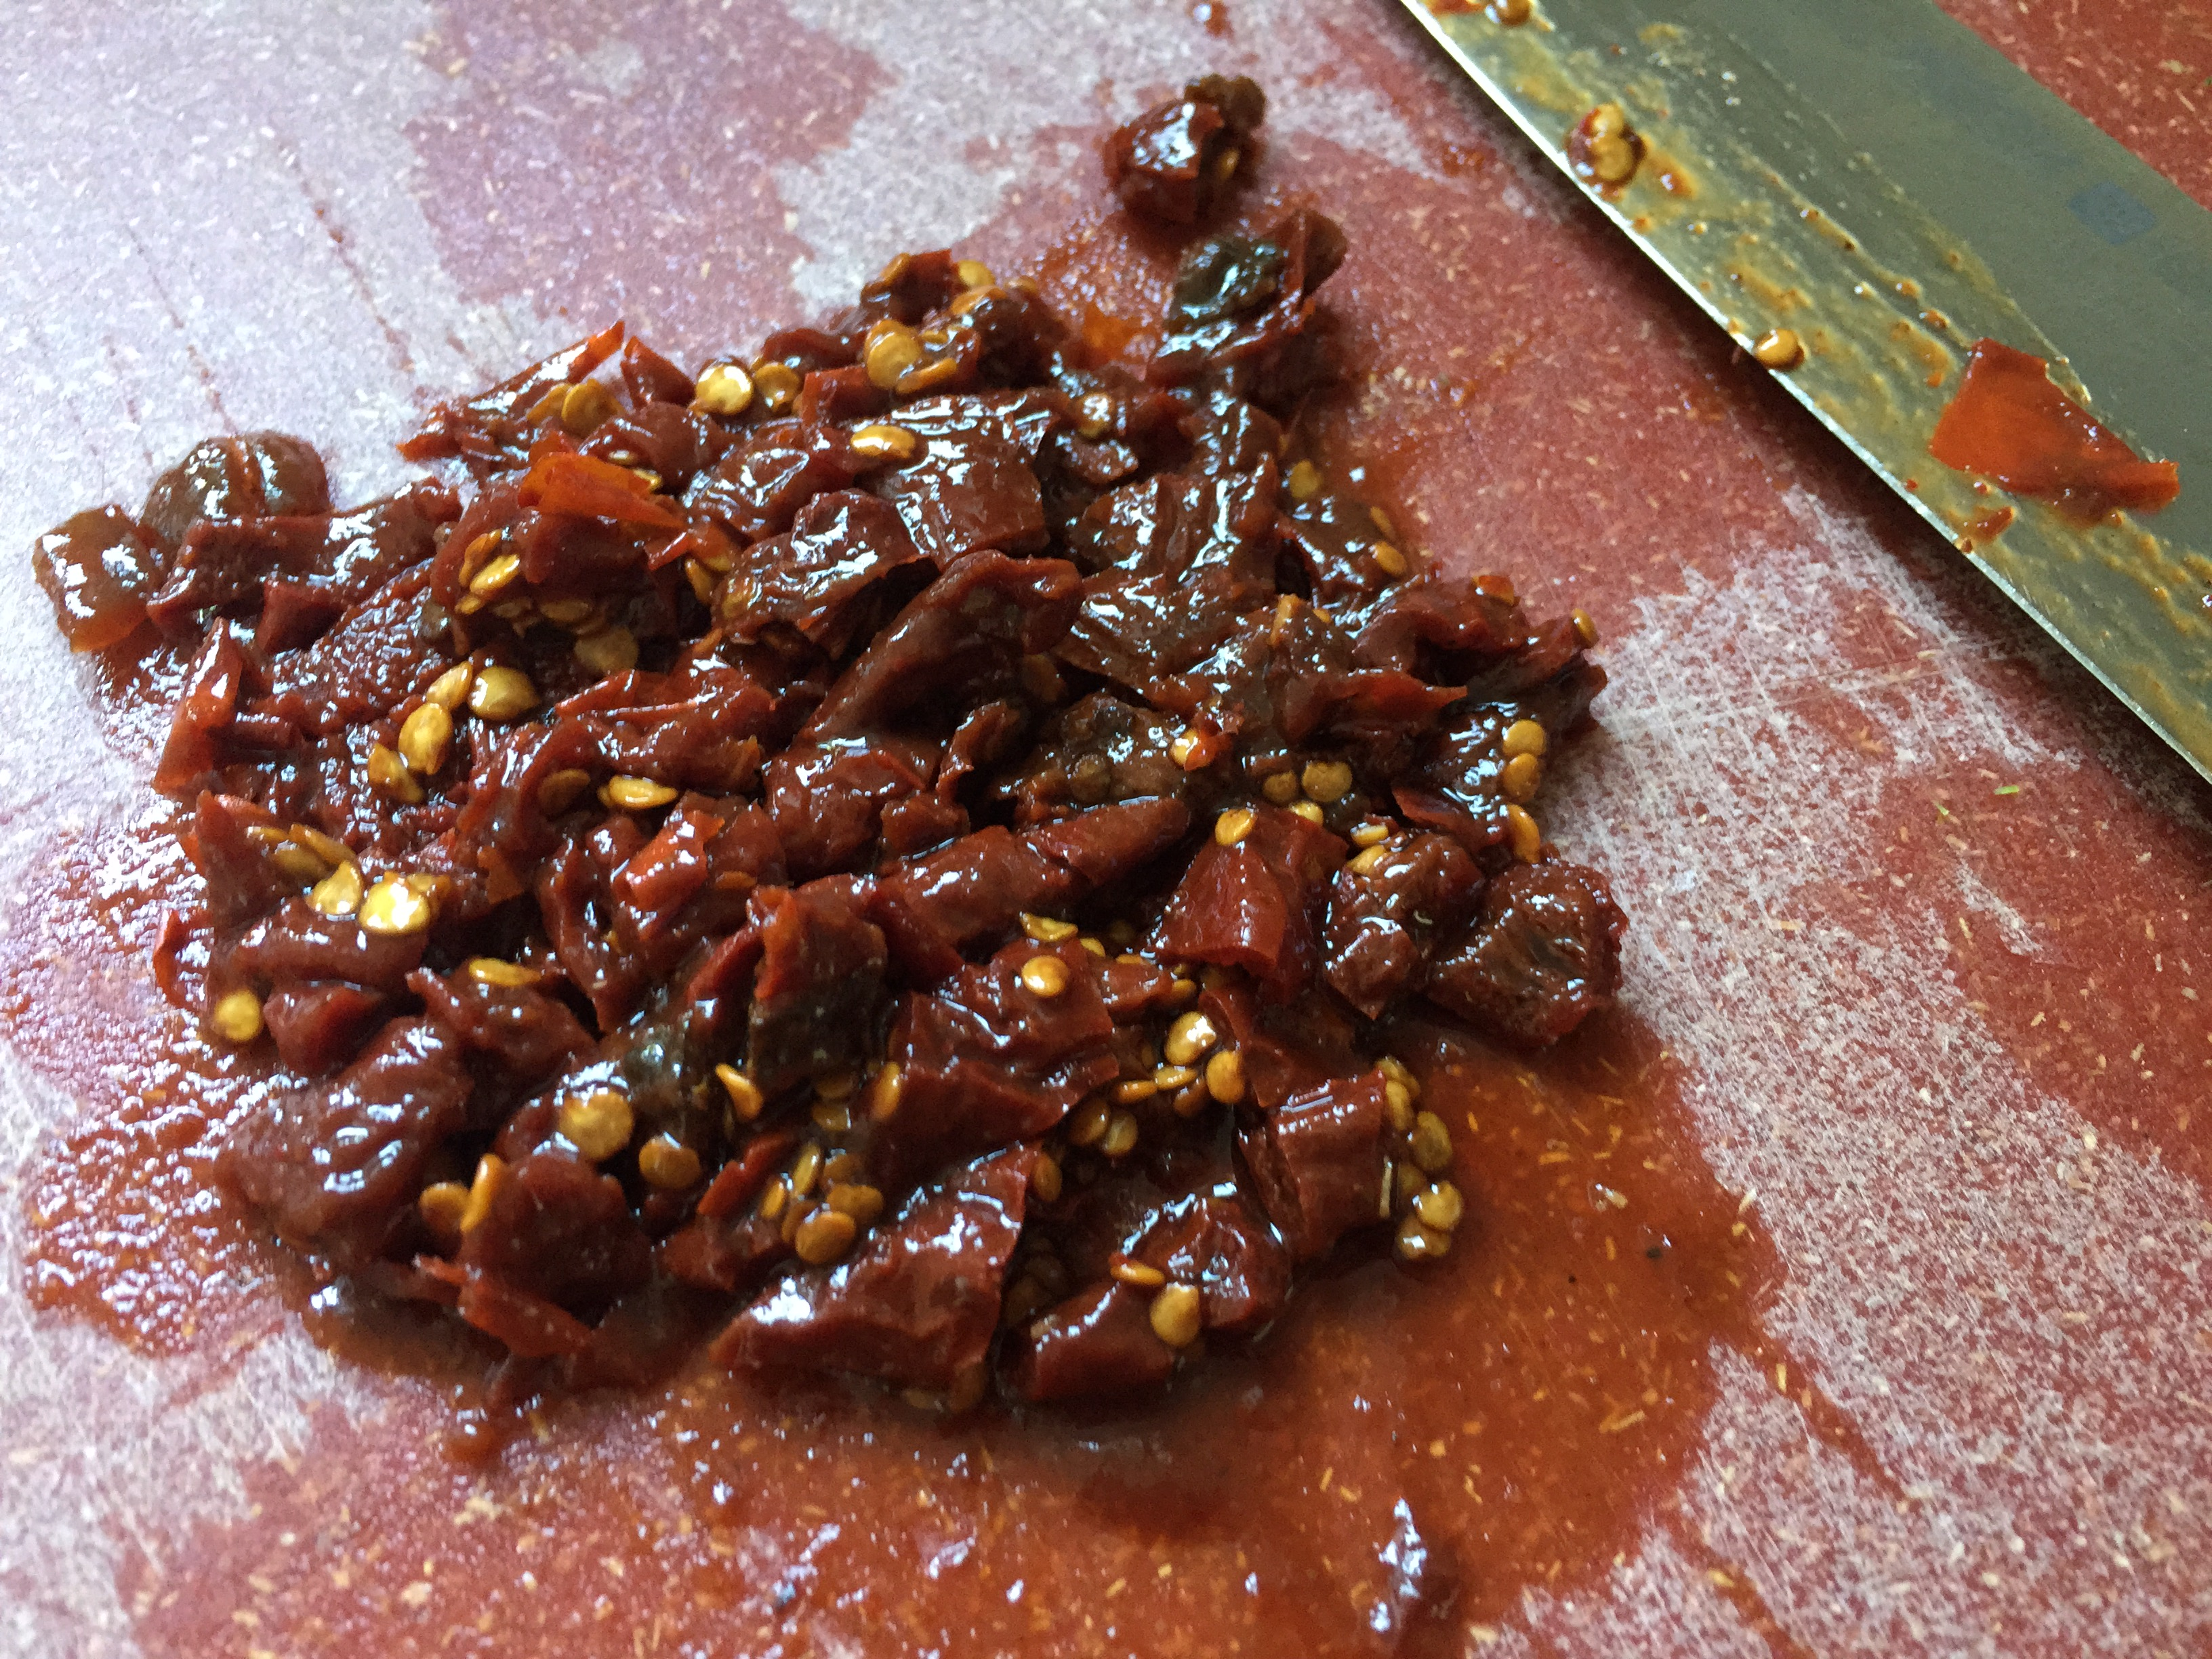 Chipotle peppers chopped MyMommaToldMe.com